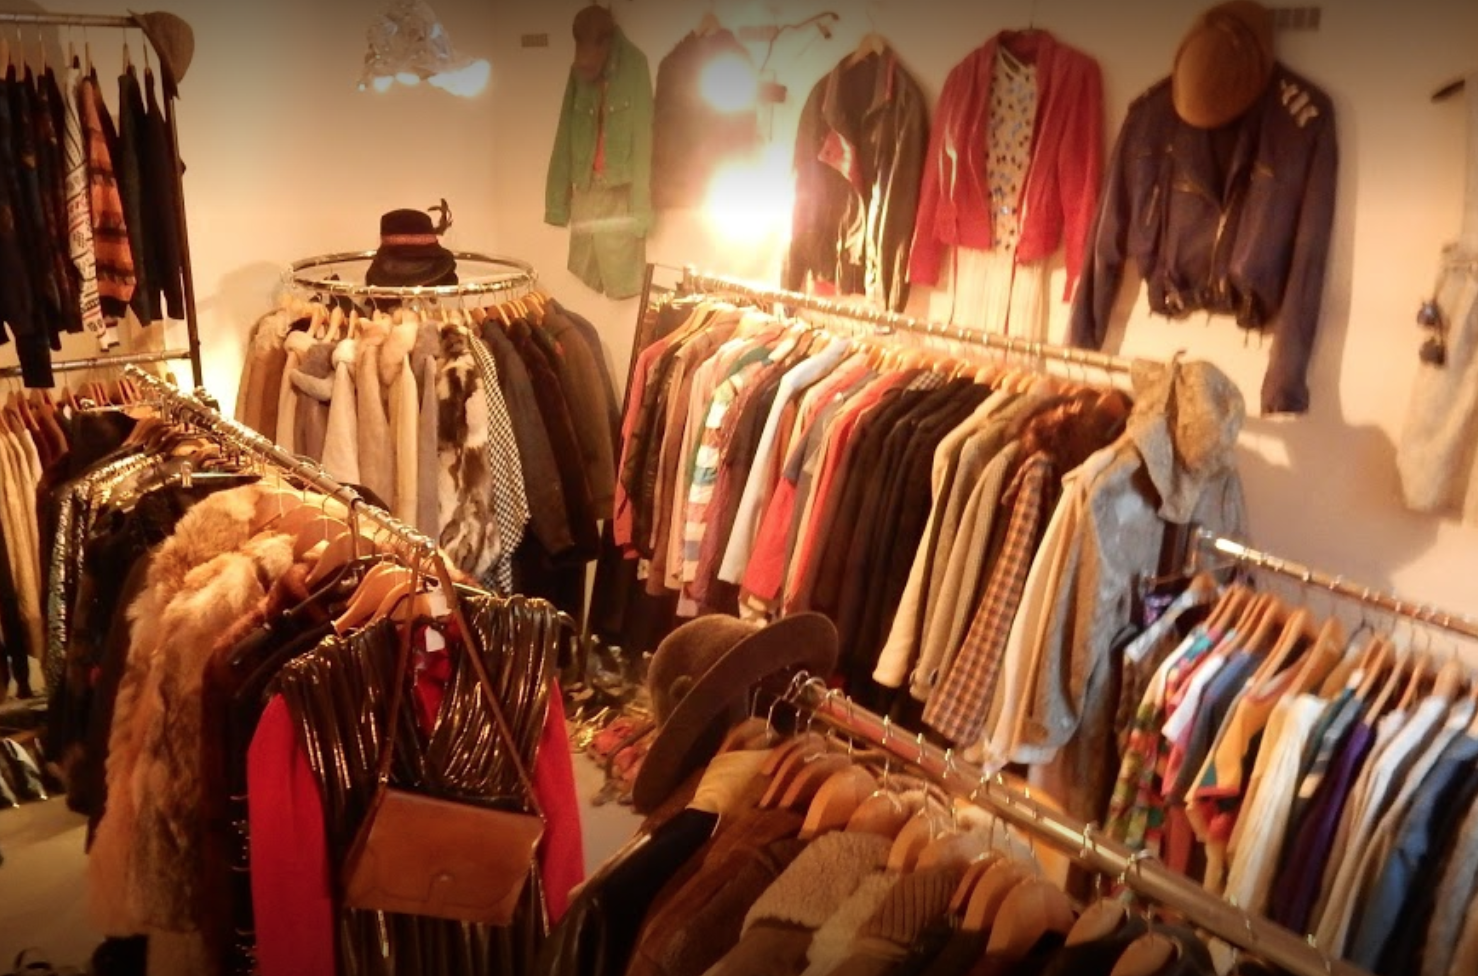 VINTAGE STUFF - Zehdenicker Str. 14, 10119 Berlin- Second hand that looks really cool, unique and retro- very curated and stylish